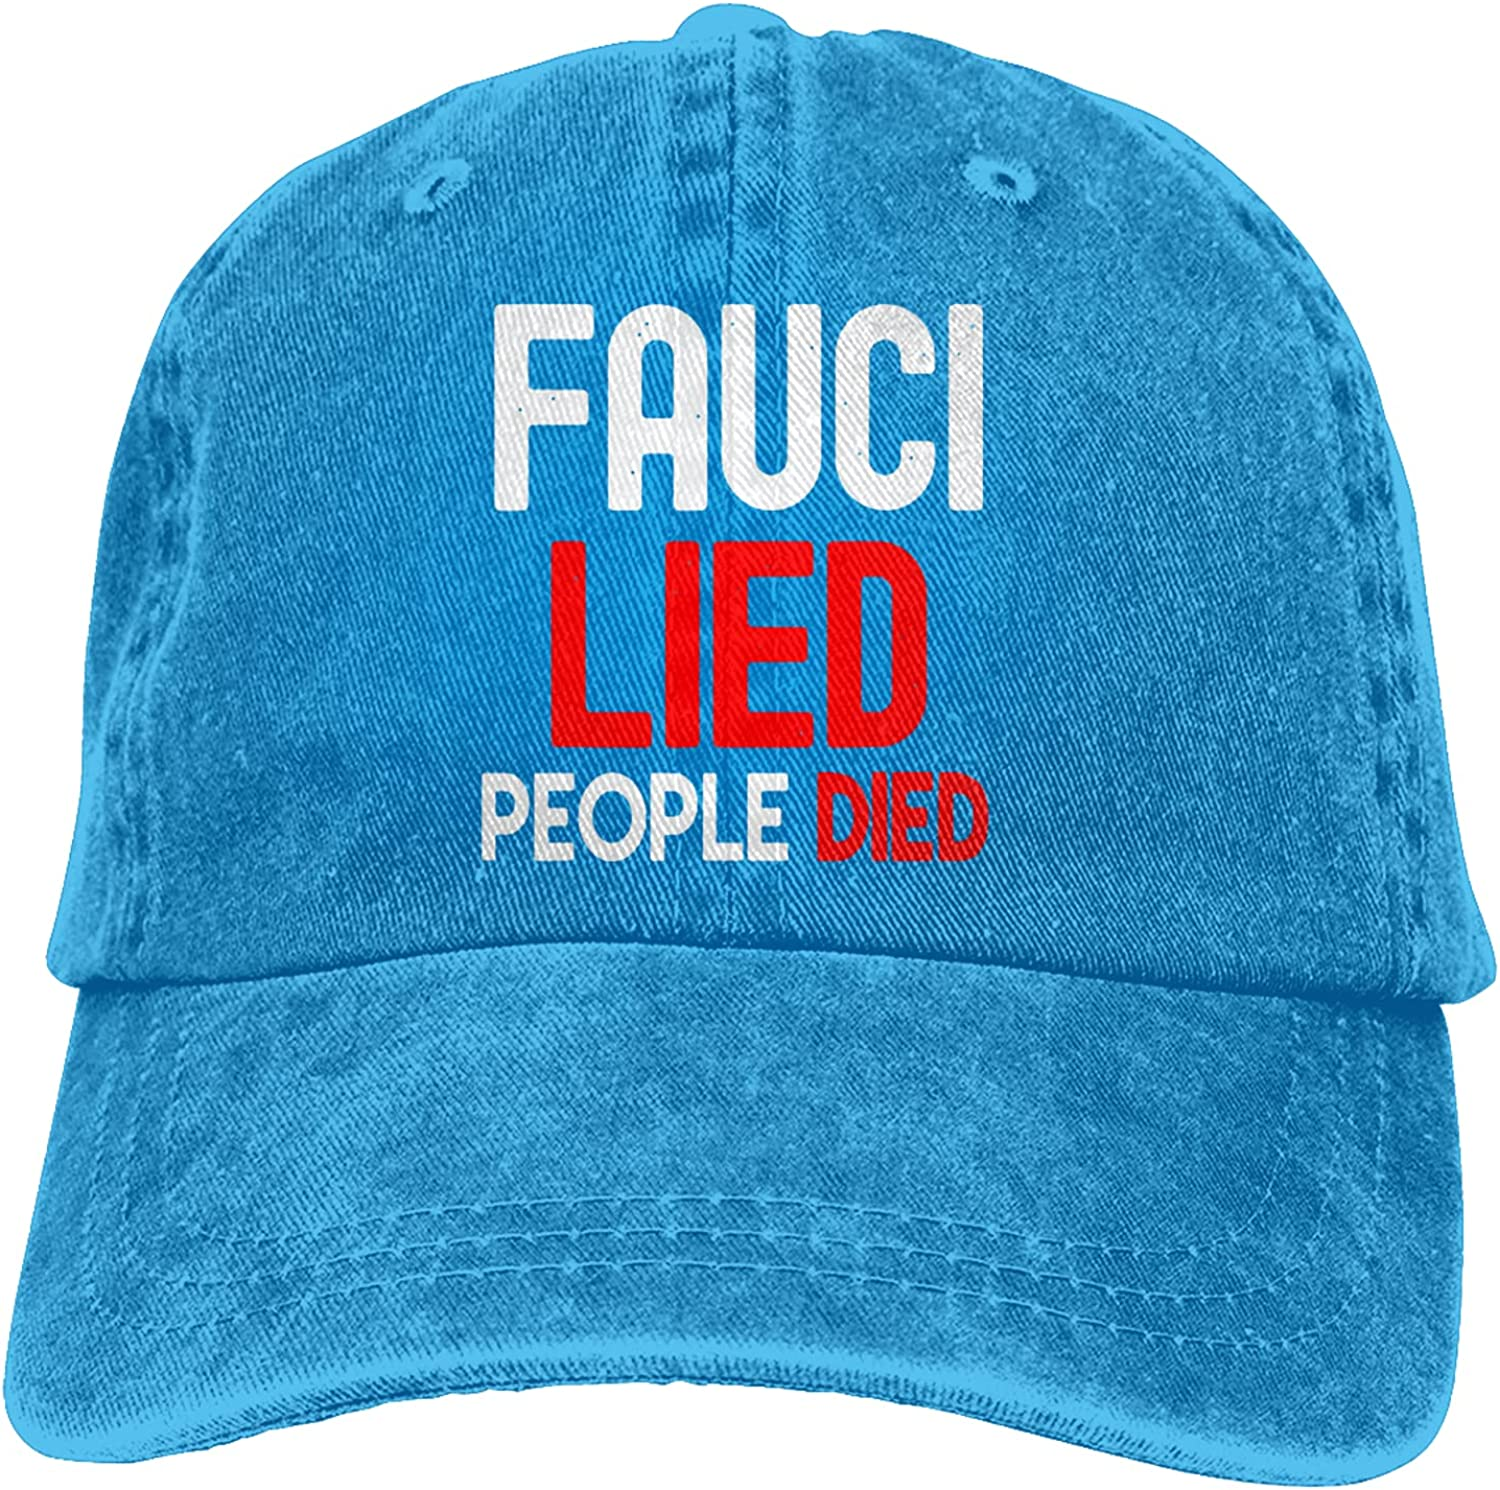 Fauci Lied People Died Hat Dr Fauci Liar Baseball Cap Fire Fauci Sun Protection Trucker Dad Hat